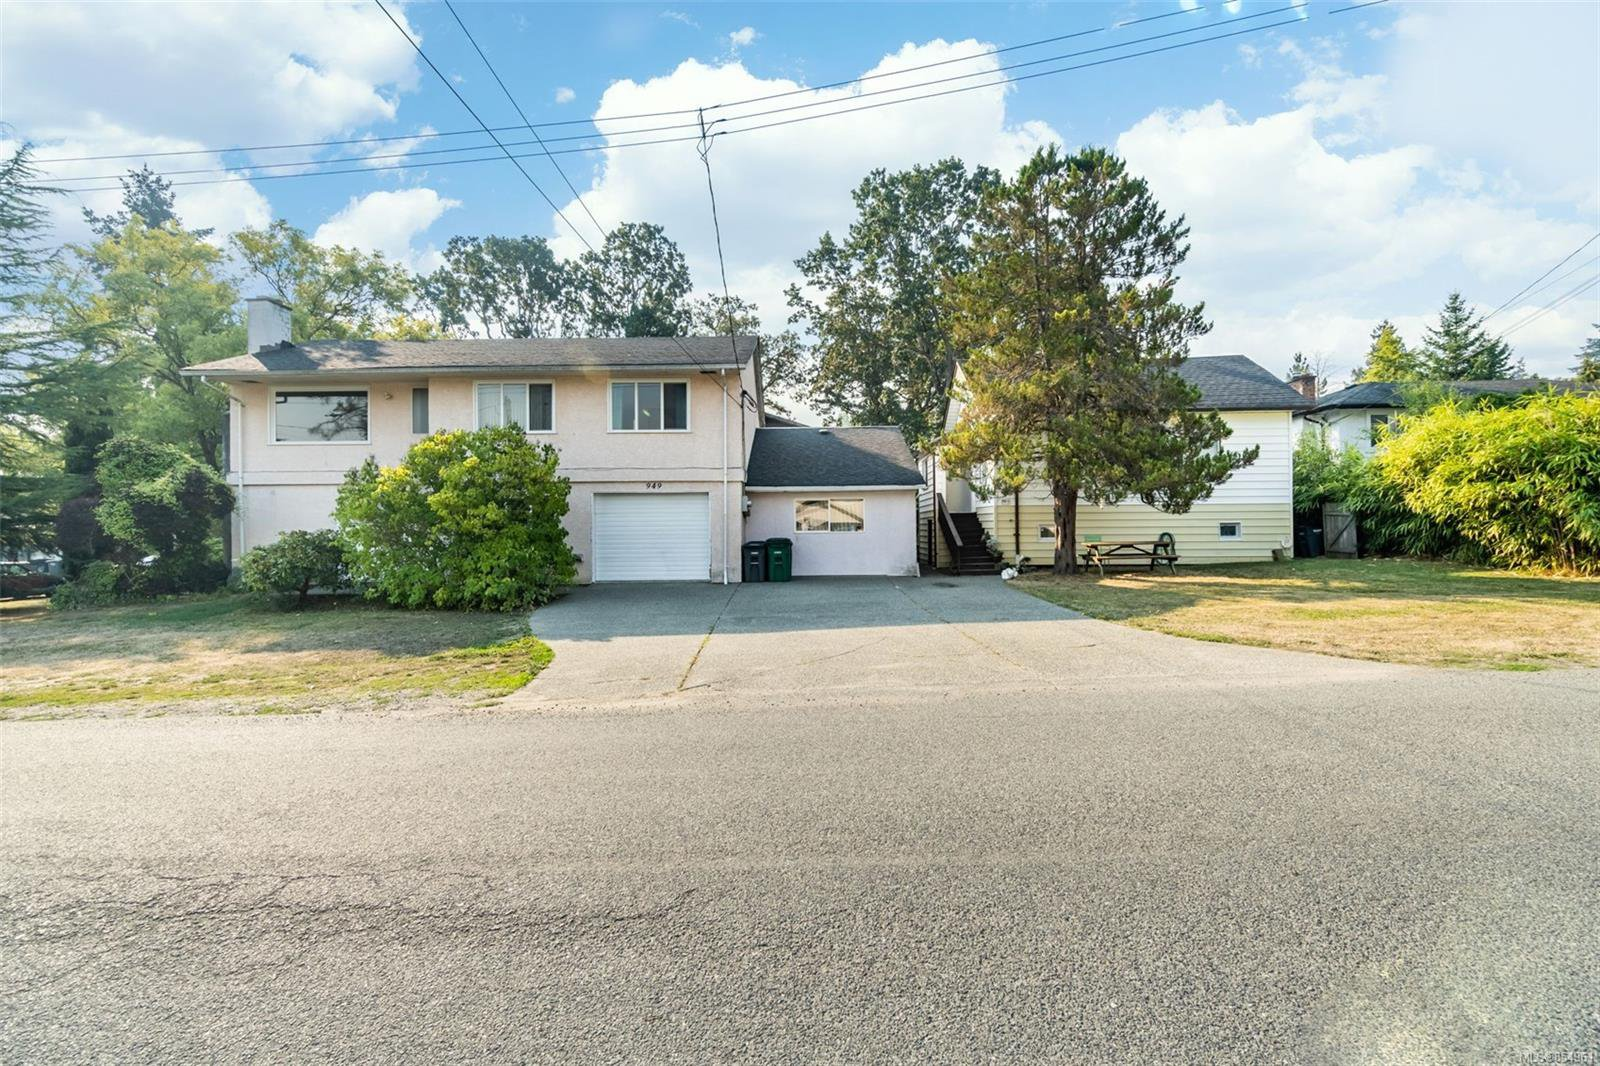 Main Photo: 949 McBriar Ave in : SE Lake Hill House for sale (Saanich East)  : MLS®# 854961